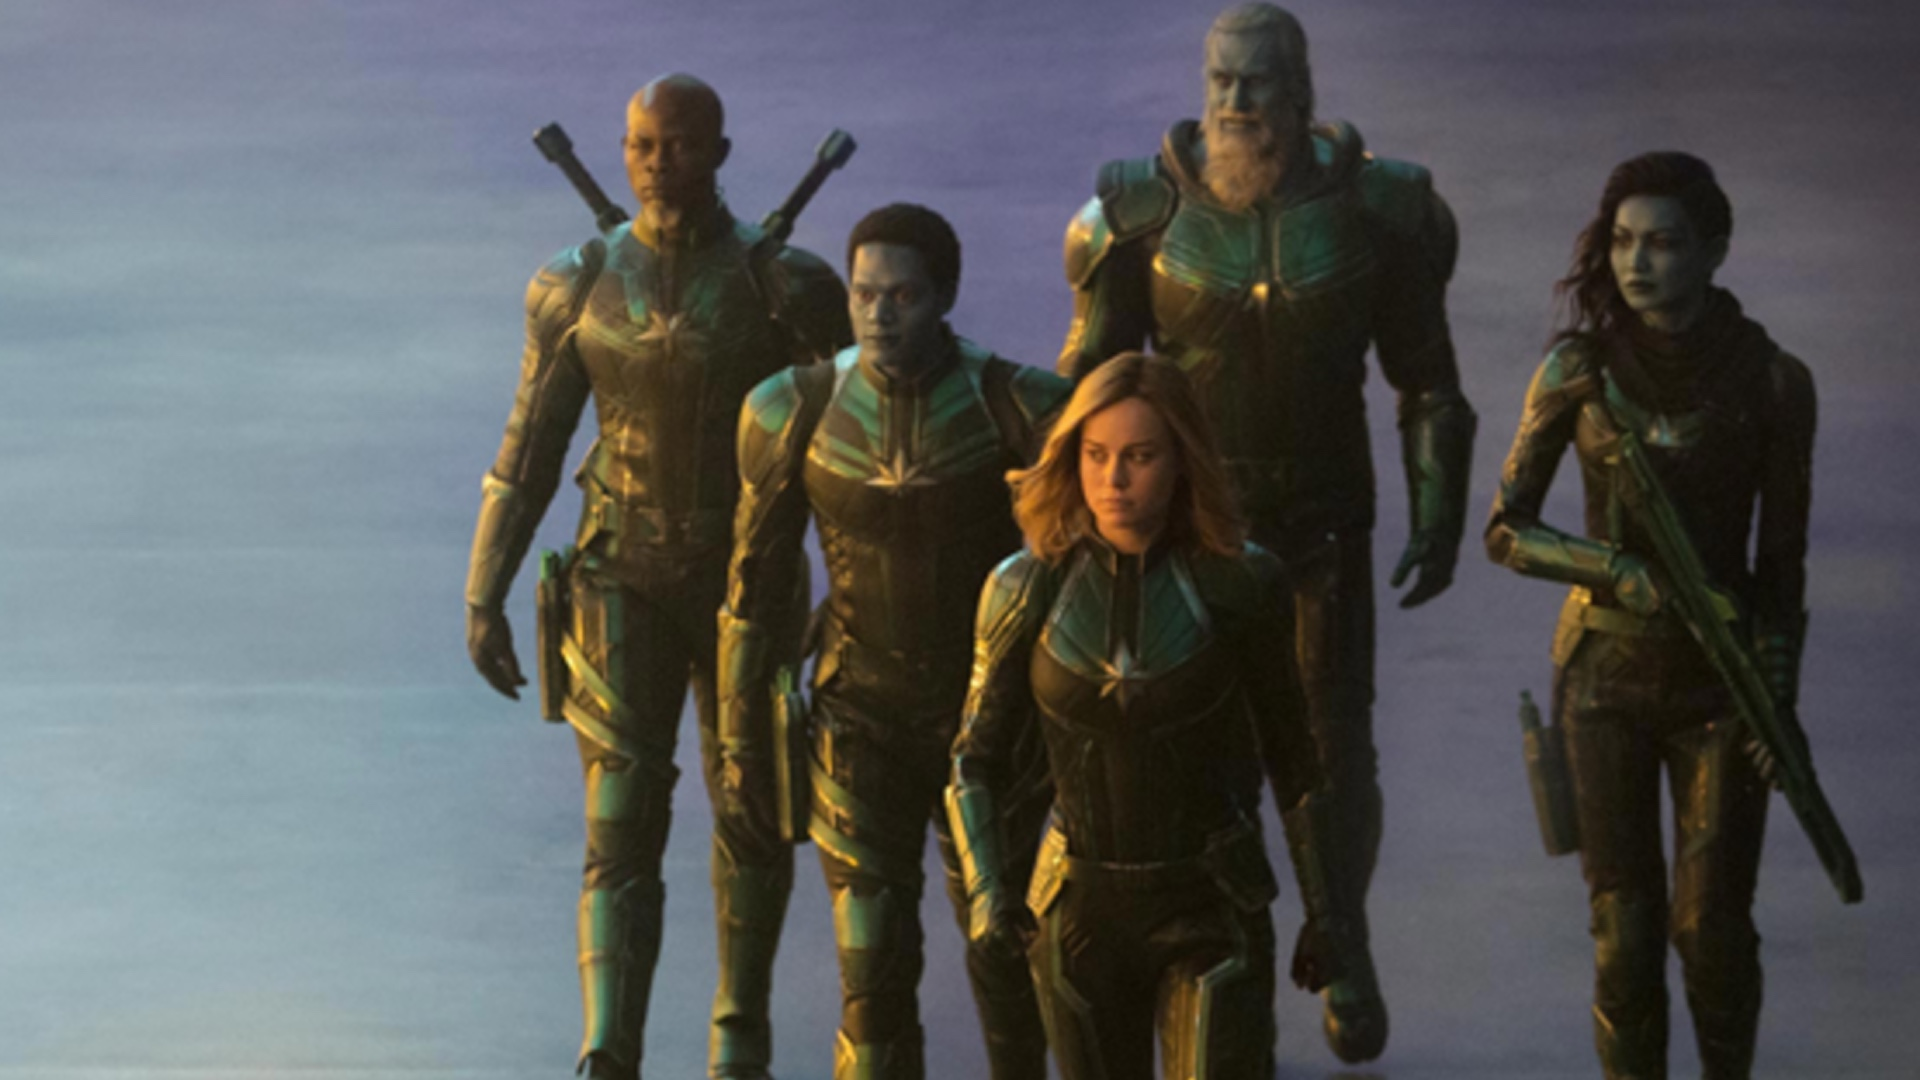 new captain marvel photos give us a closeup look at the noble